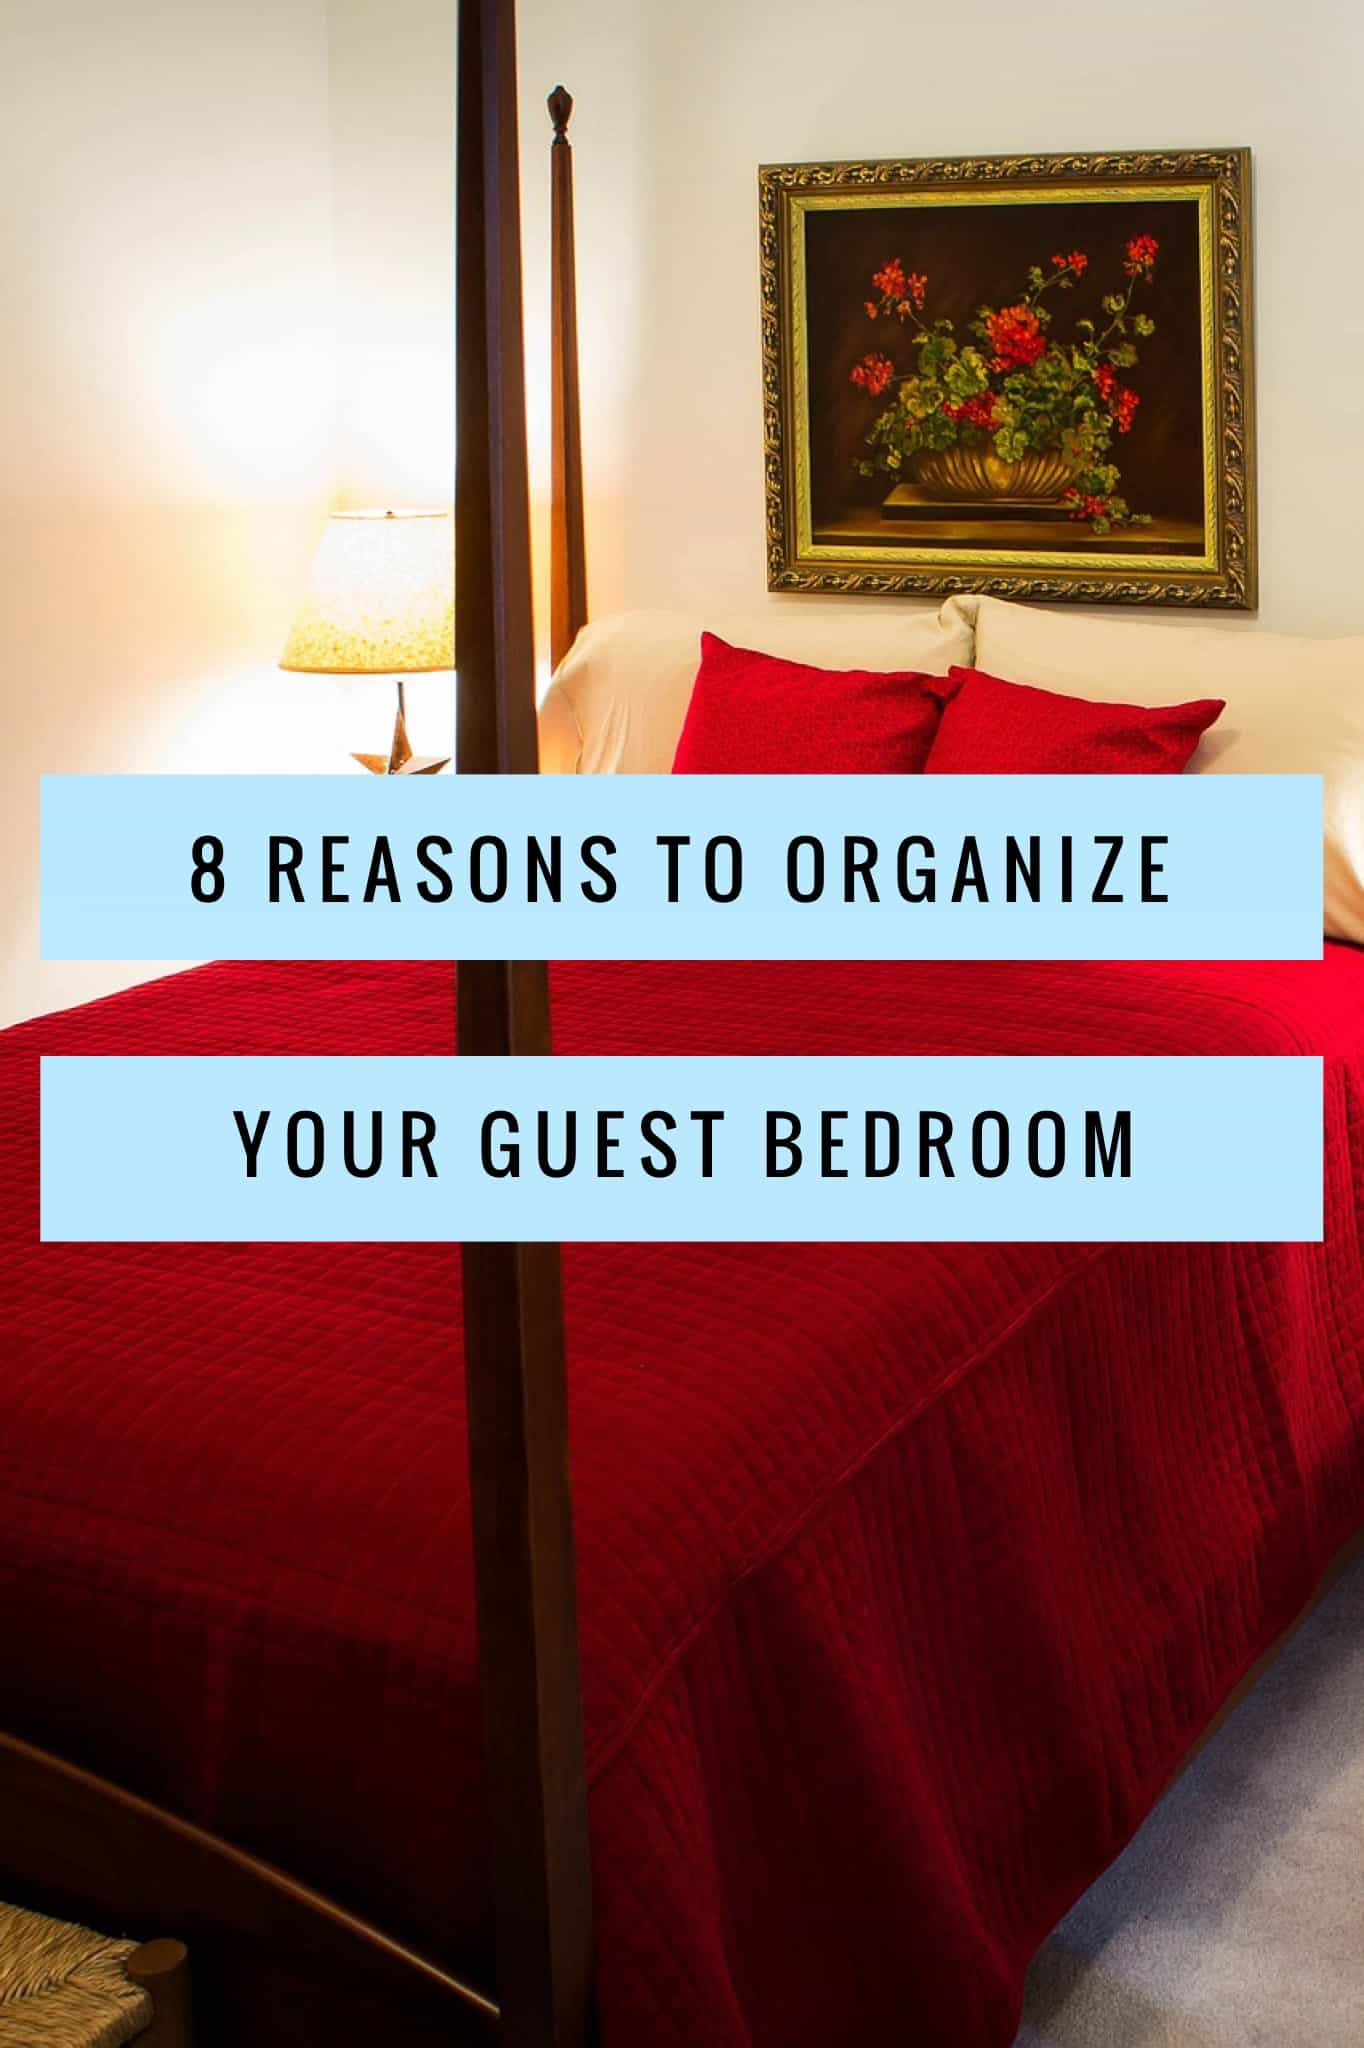 8 Reasons to Organize Your Guest Bedroom title